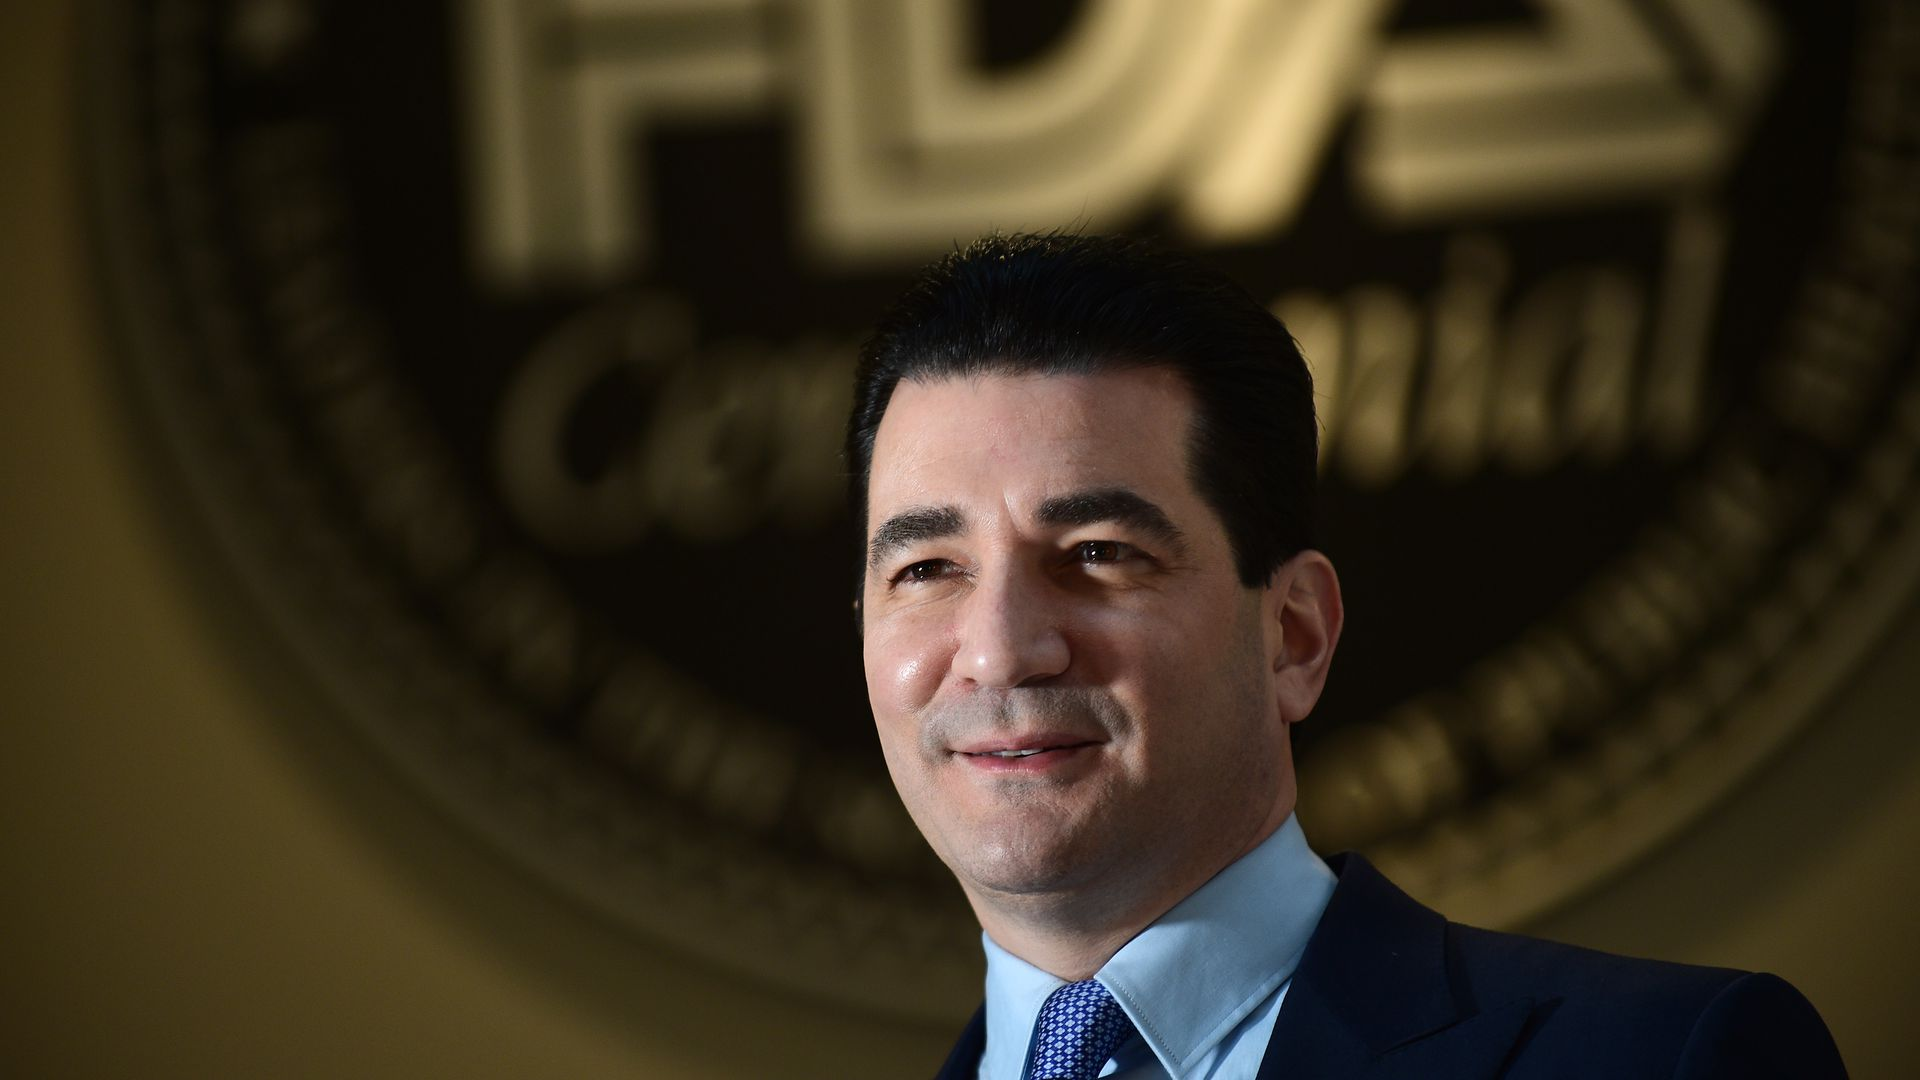 Former FDA Commissioner Scott Gottlieb